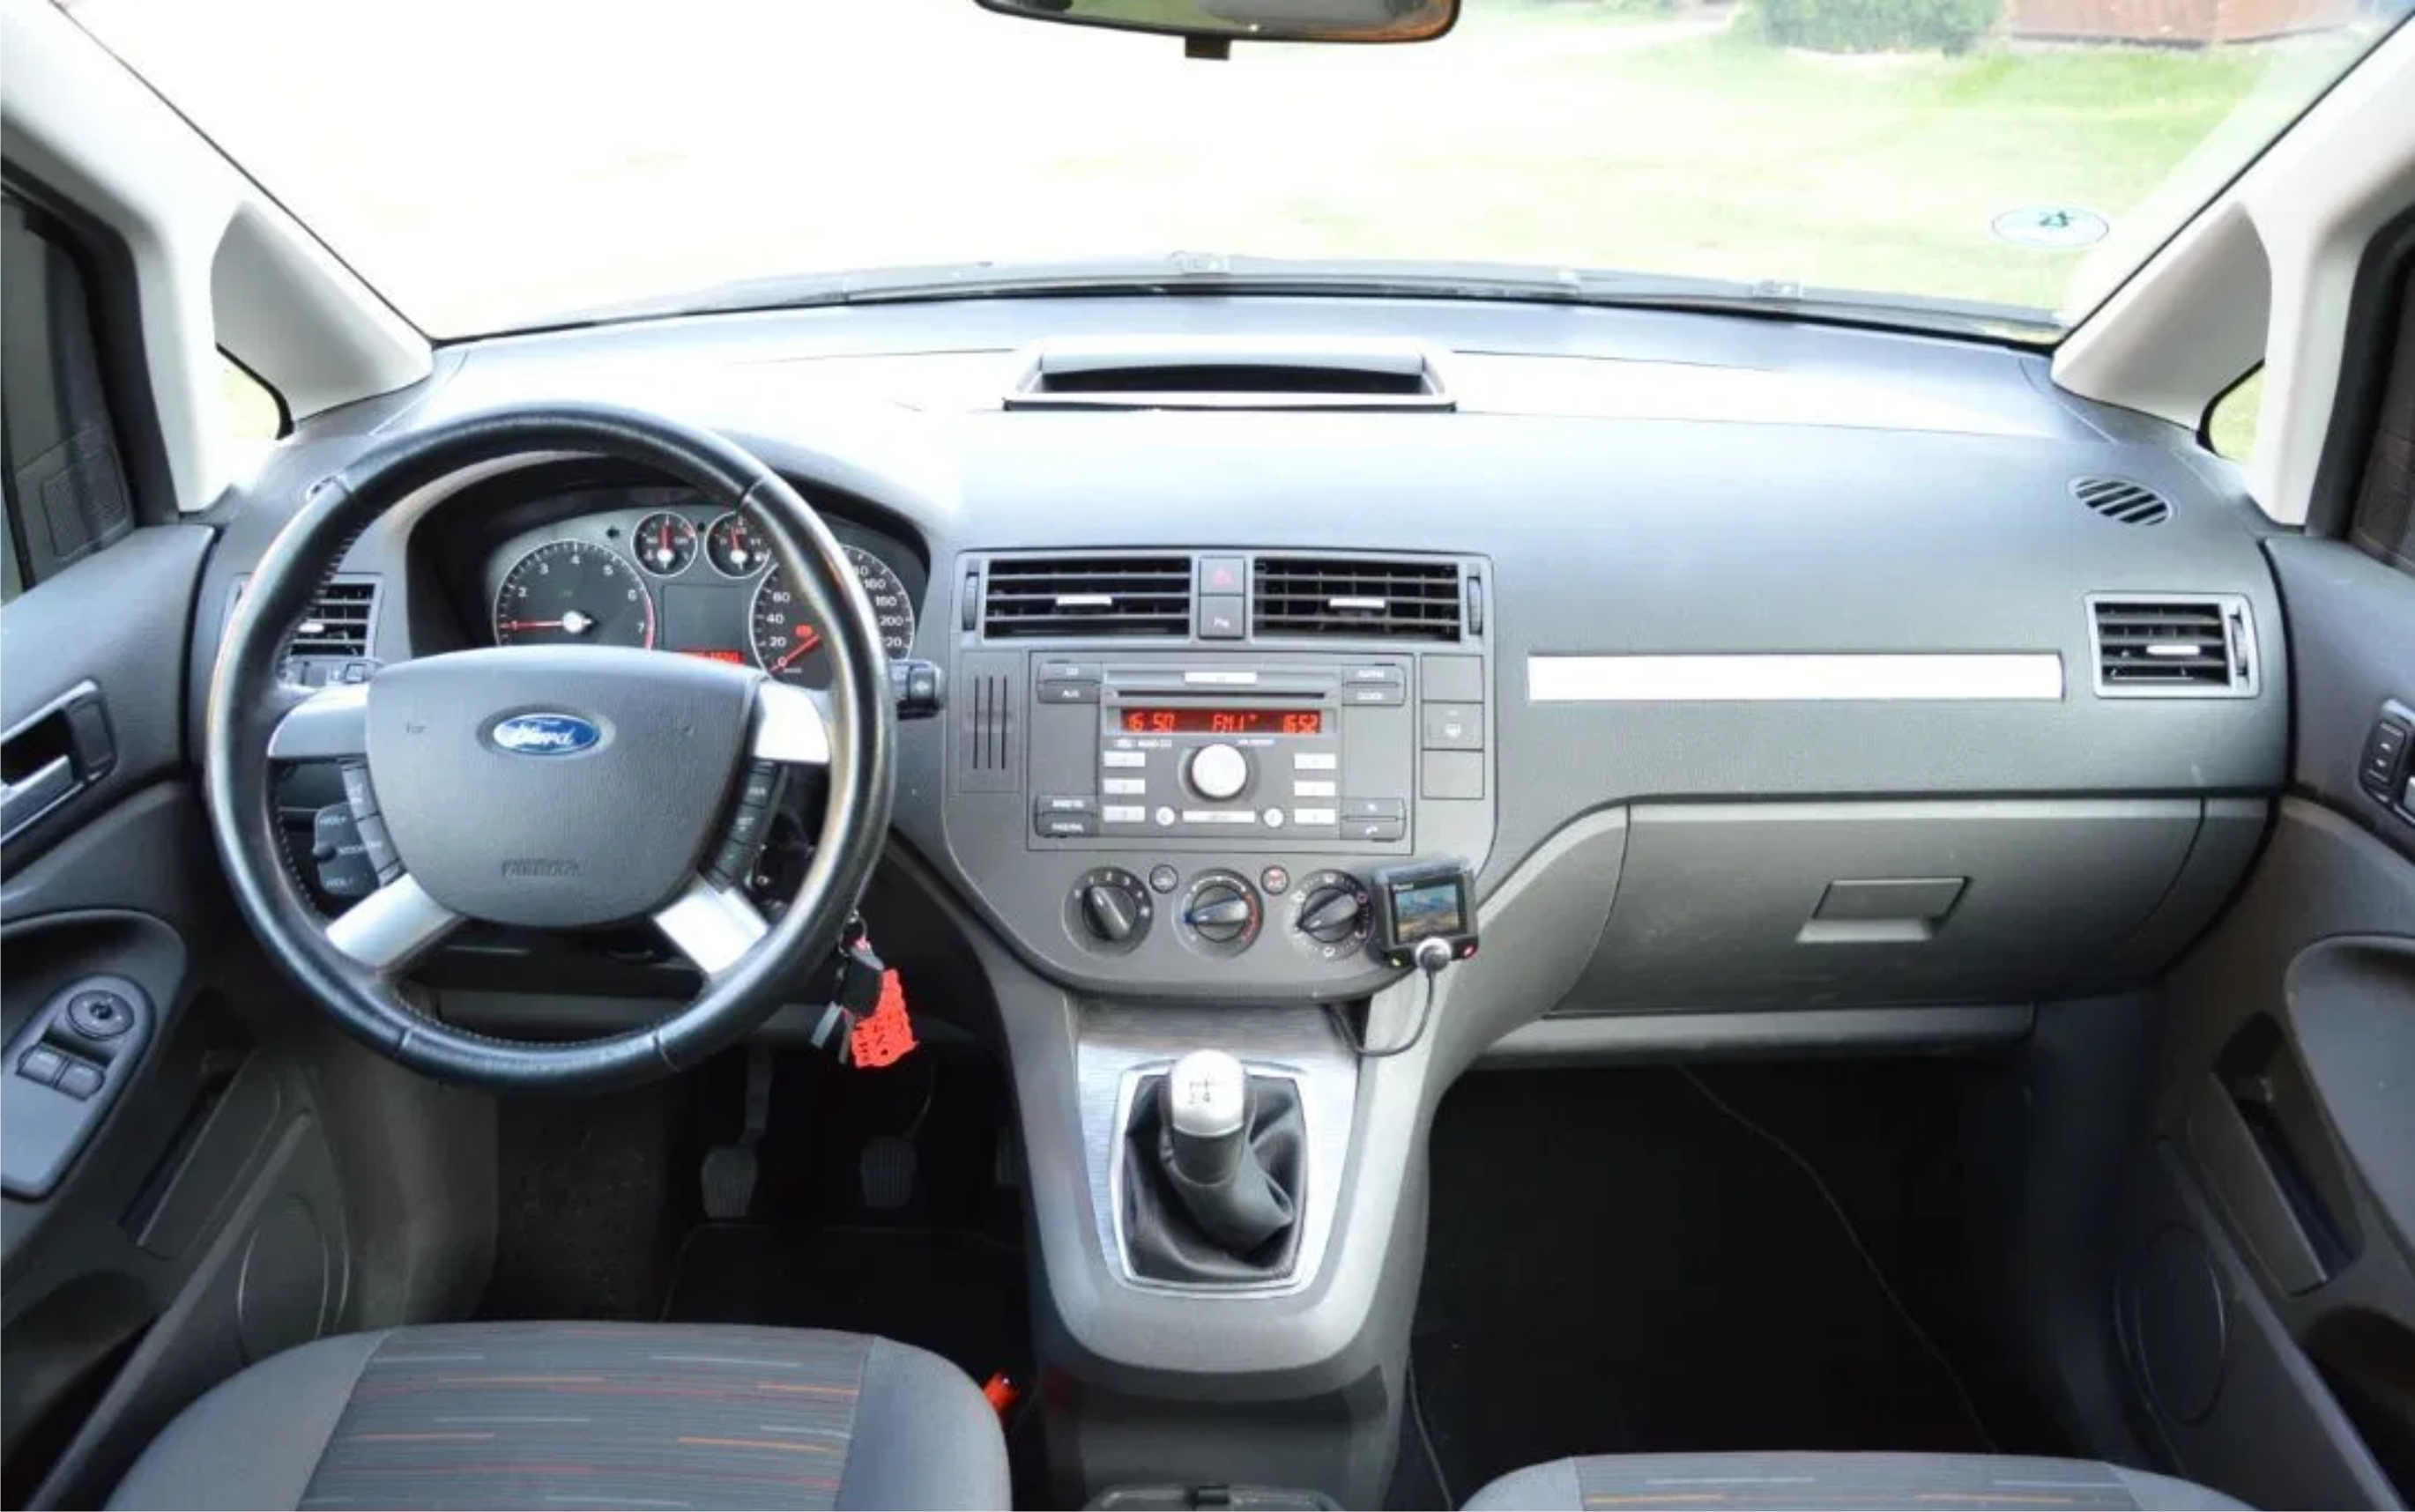 Ford C-MAX I